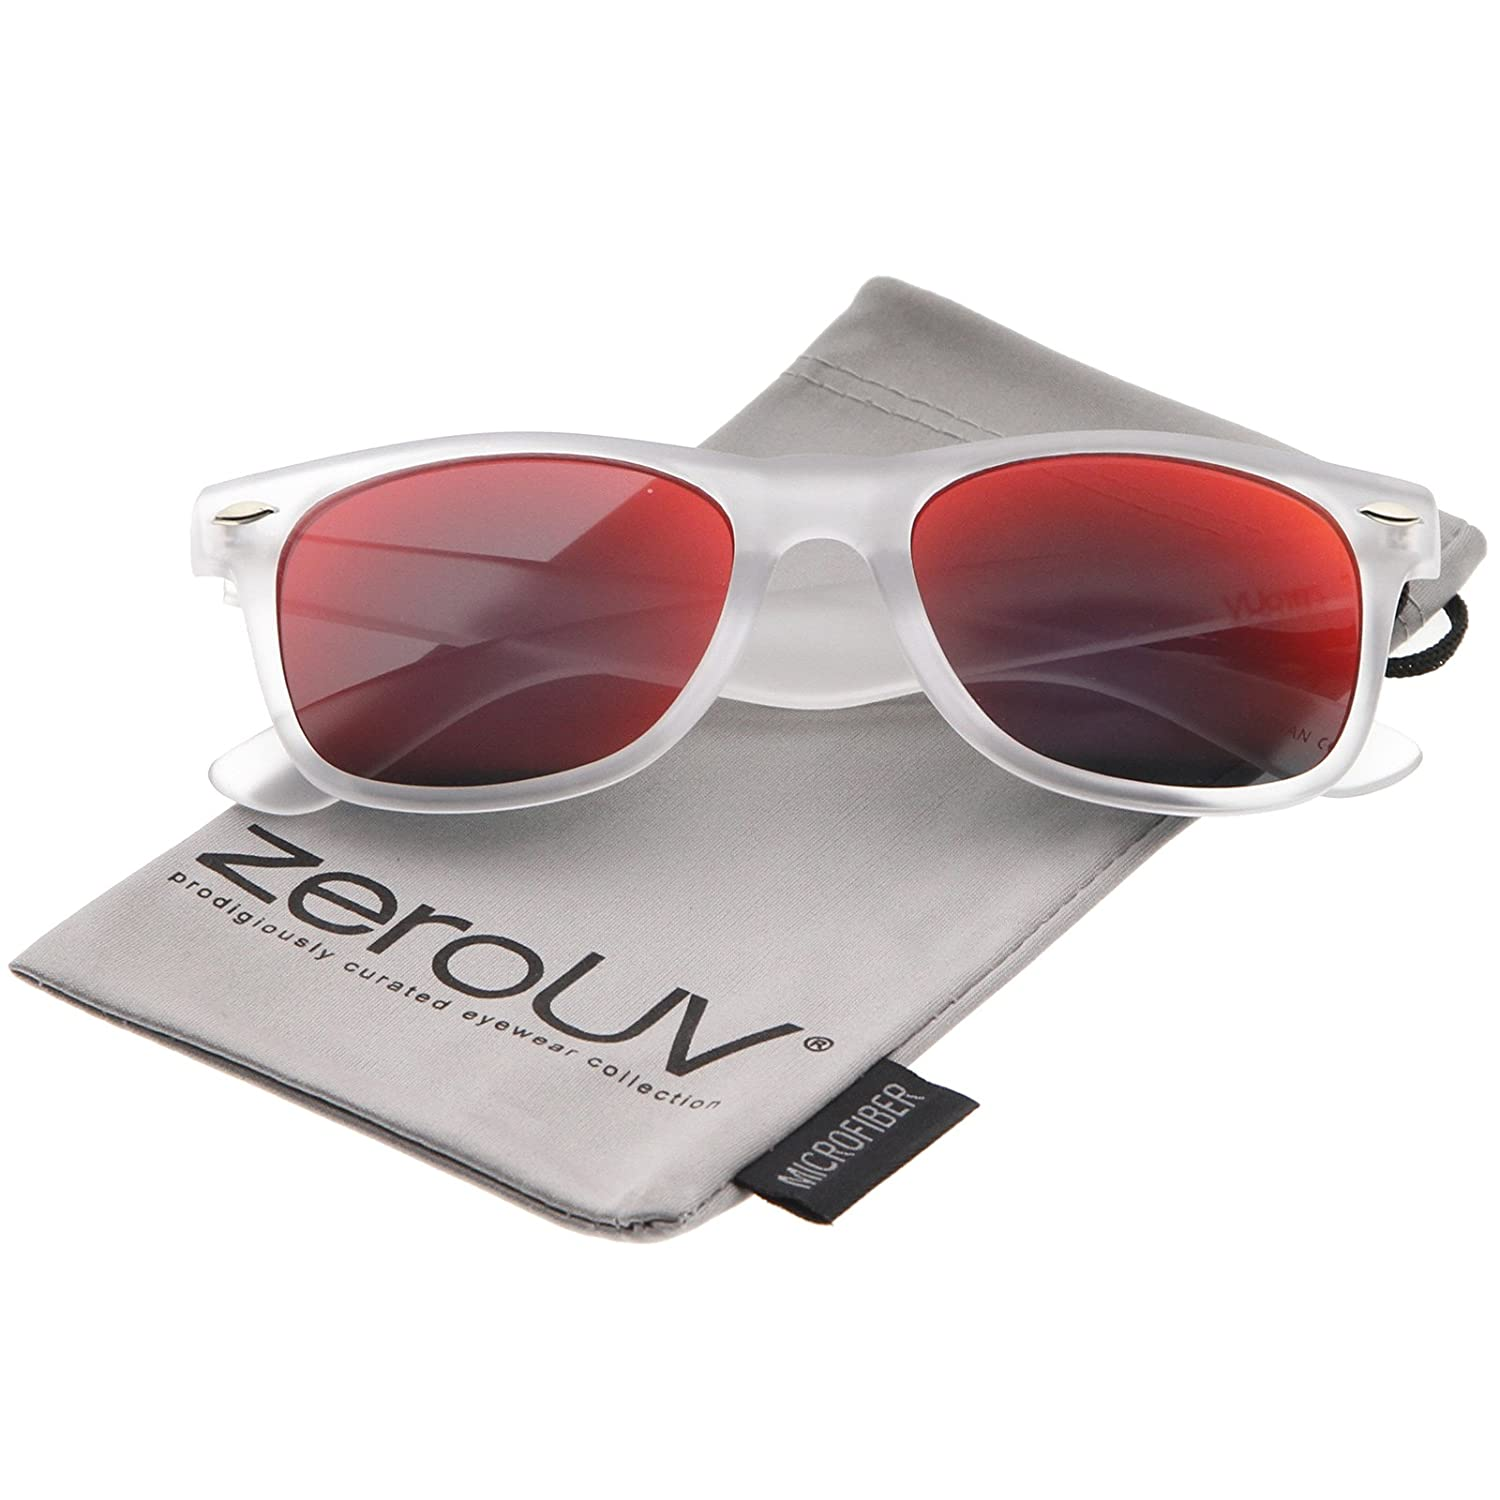 61bccad08e1 Amazon.com  Matte Frosted Frame Reflective Colored Mirror Lens Horn Rimmed  Sunglasses 54mm (Frost Red Mirror)  Clothing